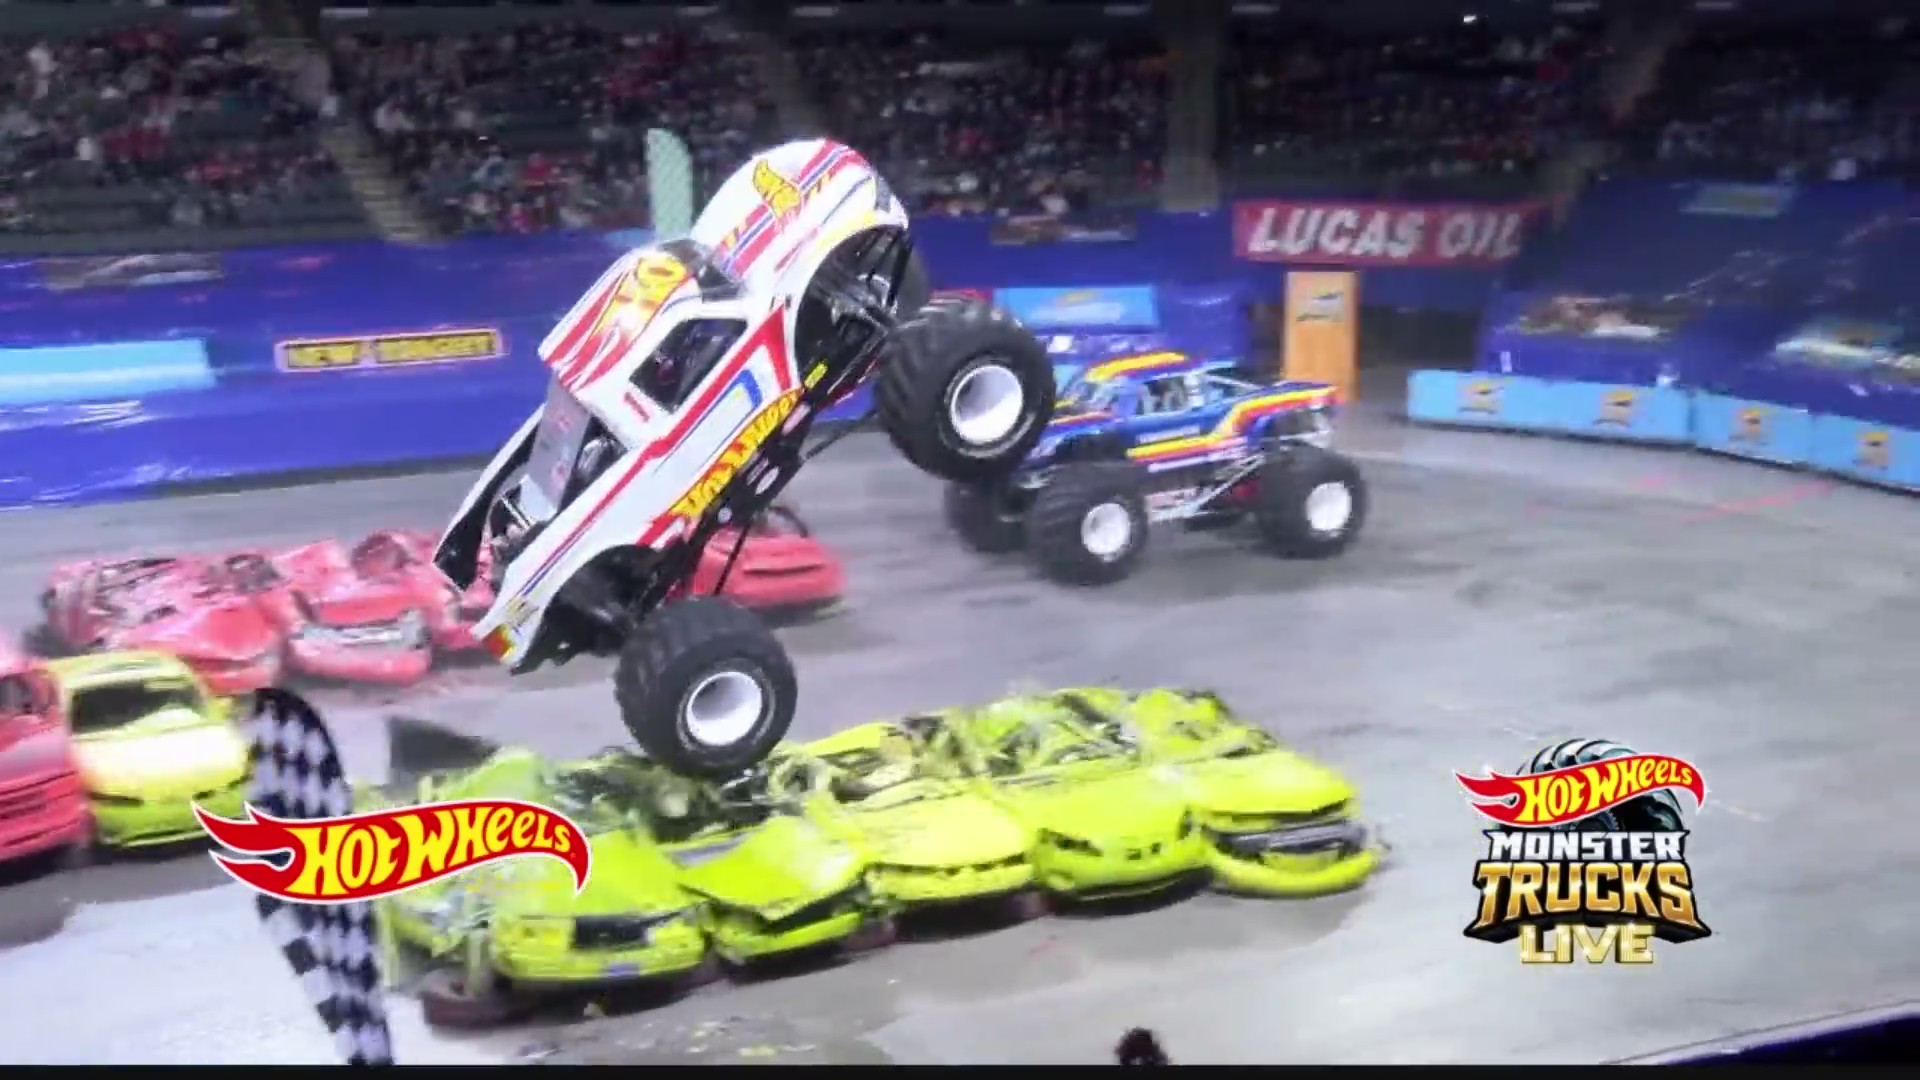 Hot Wheels Monster Truck Live At Tu Center